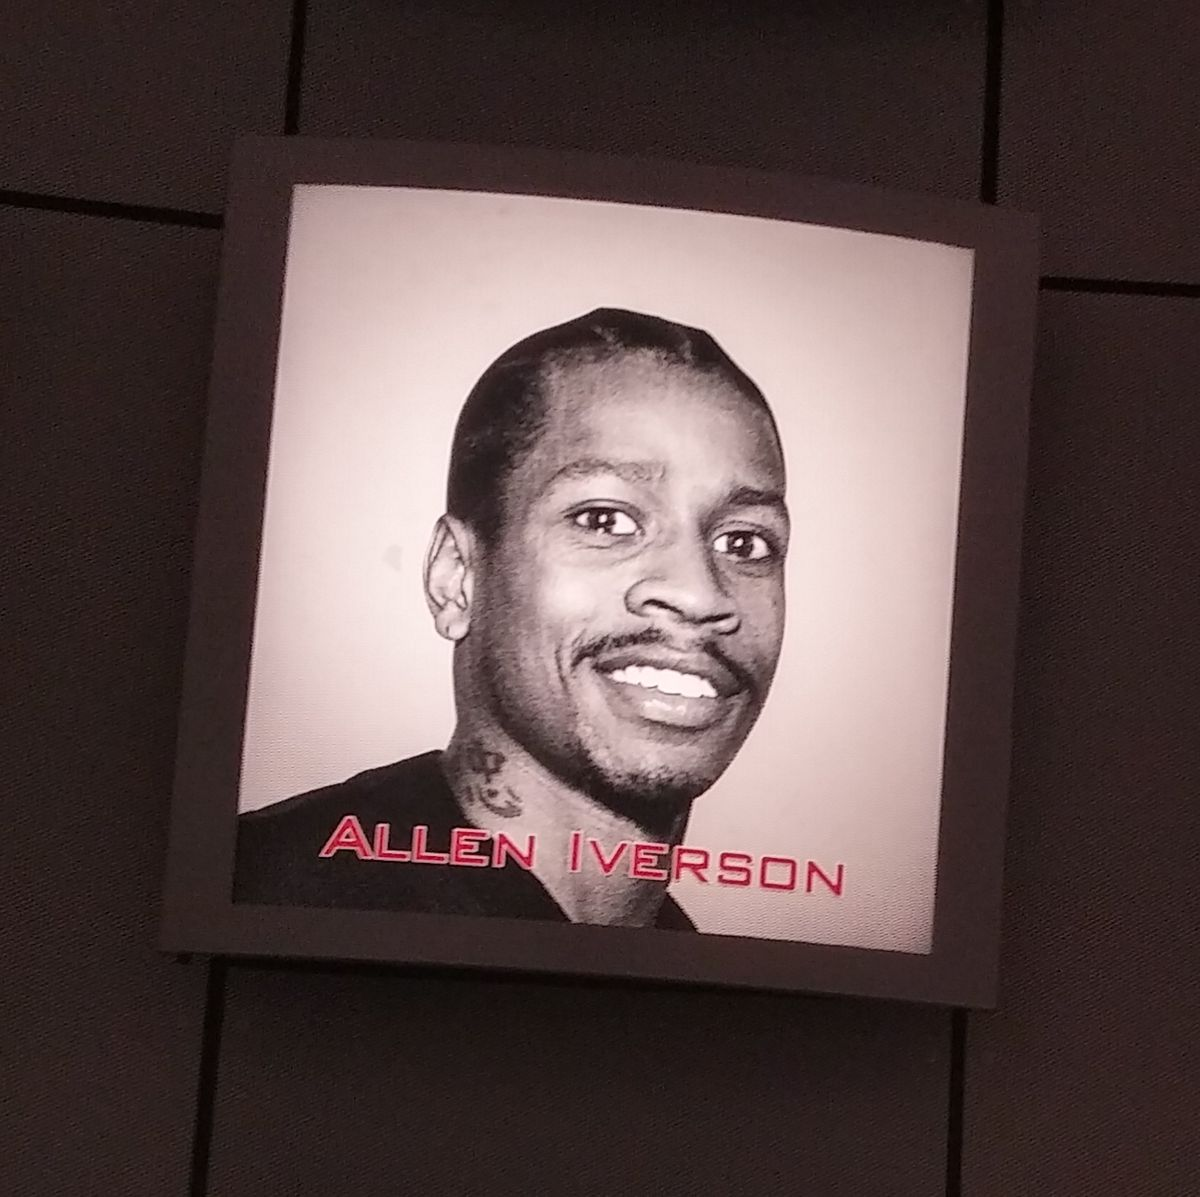 Allen Iverson's picture from the rotunda at the Naismith Memorial Basketball Hall of Fame.